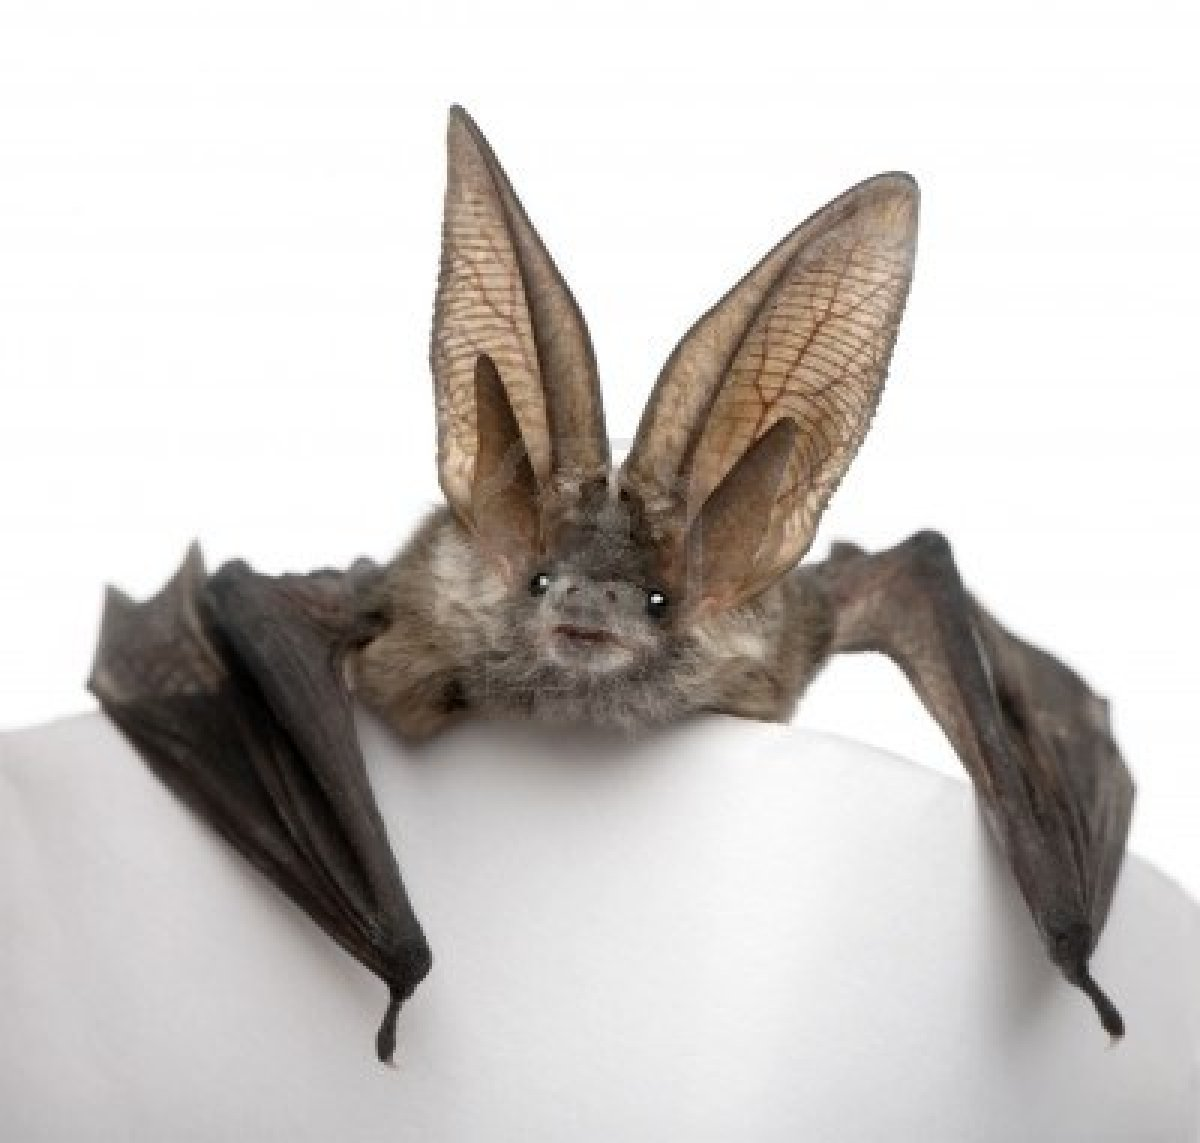 grey-long-eared-bat-plecotus-astriacus-in-front-of-white-background-studio-shot